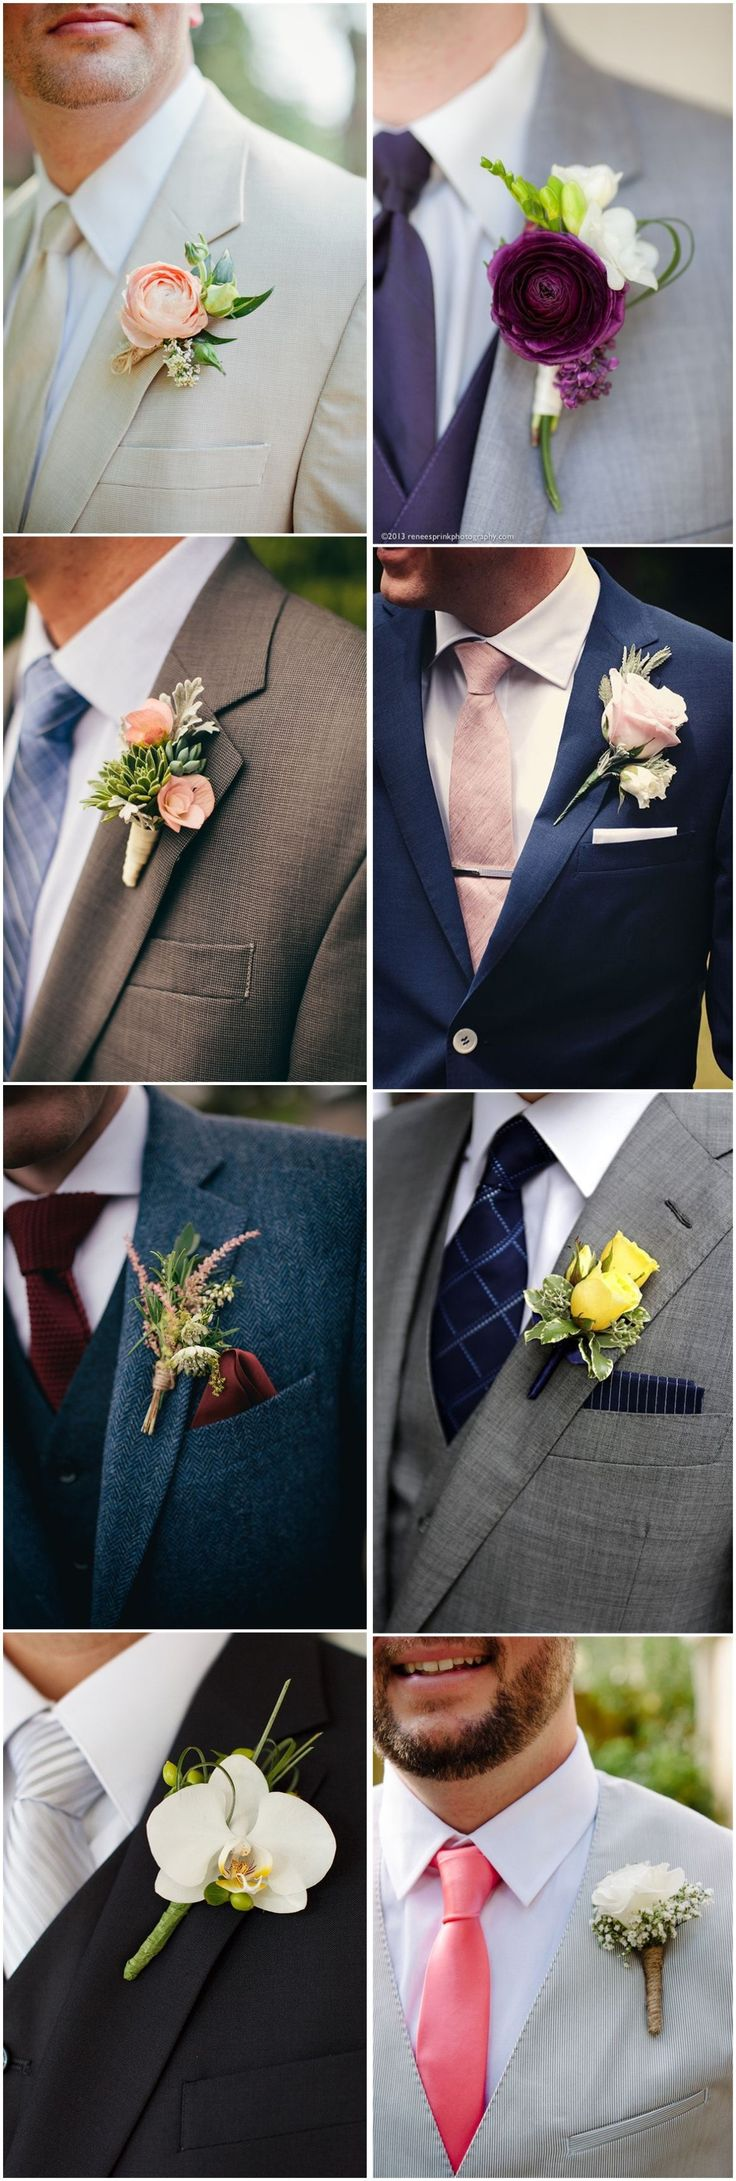 Wedding Ideas » Wedding Boutonniere » 23 Wedding Boutonniere Ideas You Cannot Resist! ❤️See more:http://www.weddinginclude.com/2017/03/wedding-boutonniere-ideas-you-cannot-resist/ alles für Ihren Erfolg - www.ratsucher.de